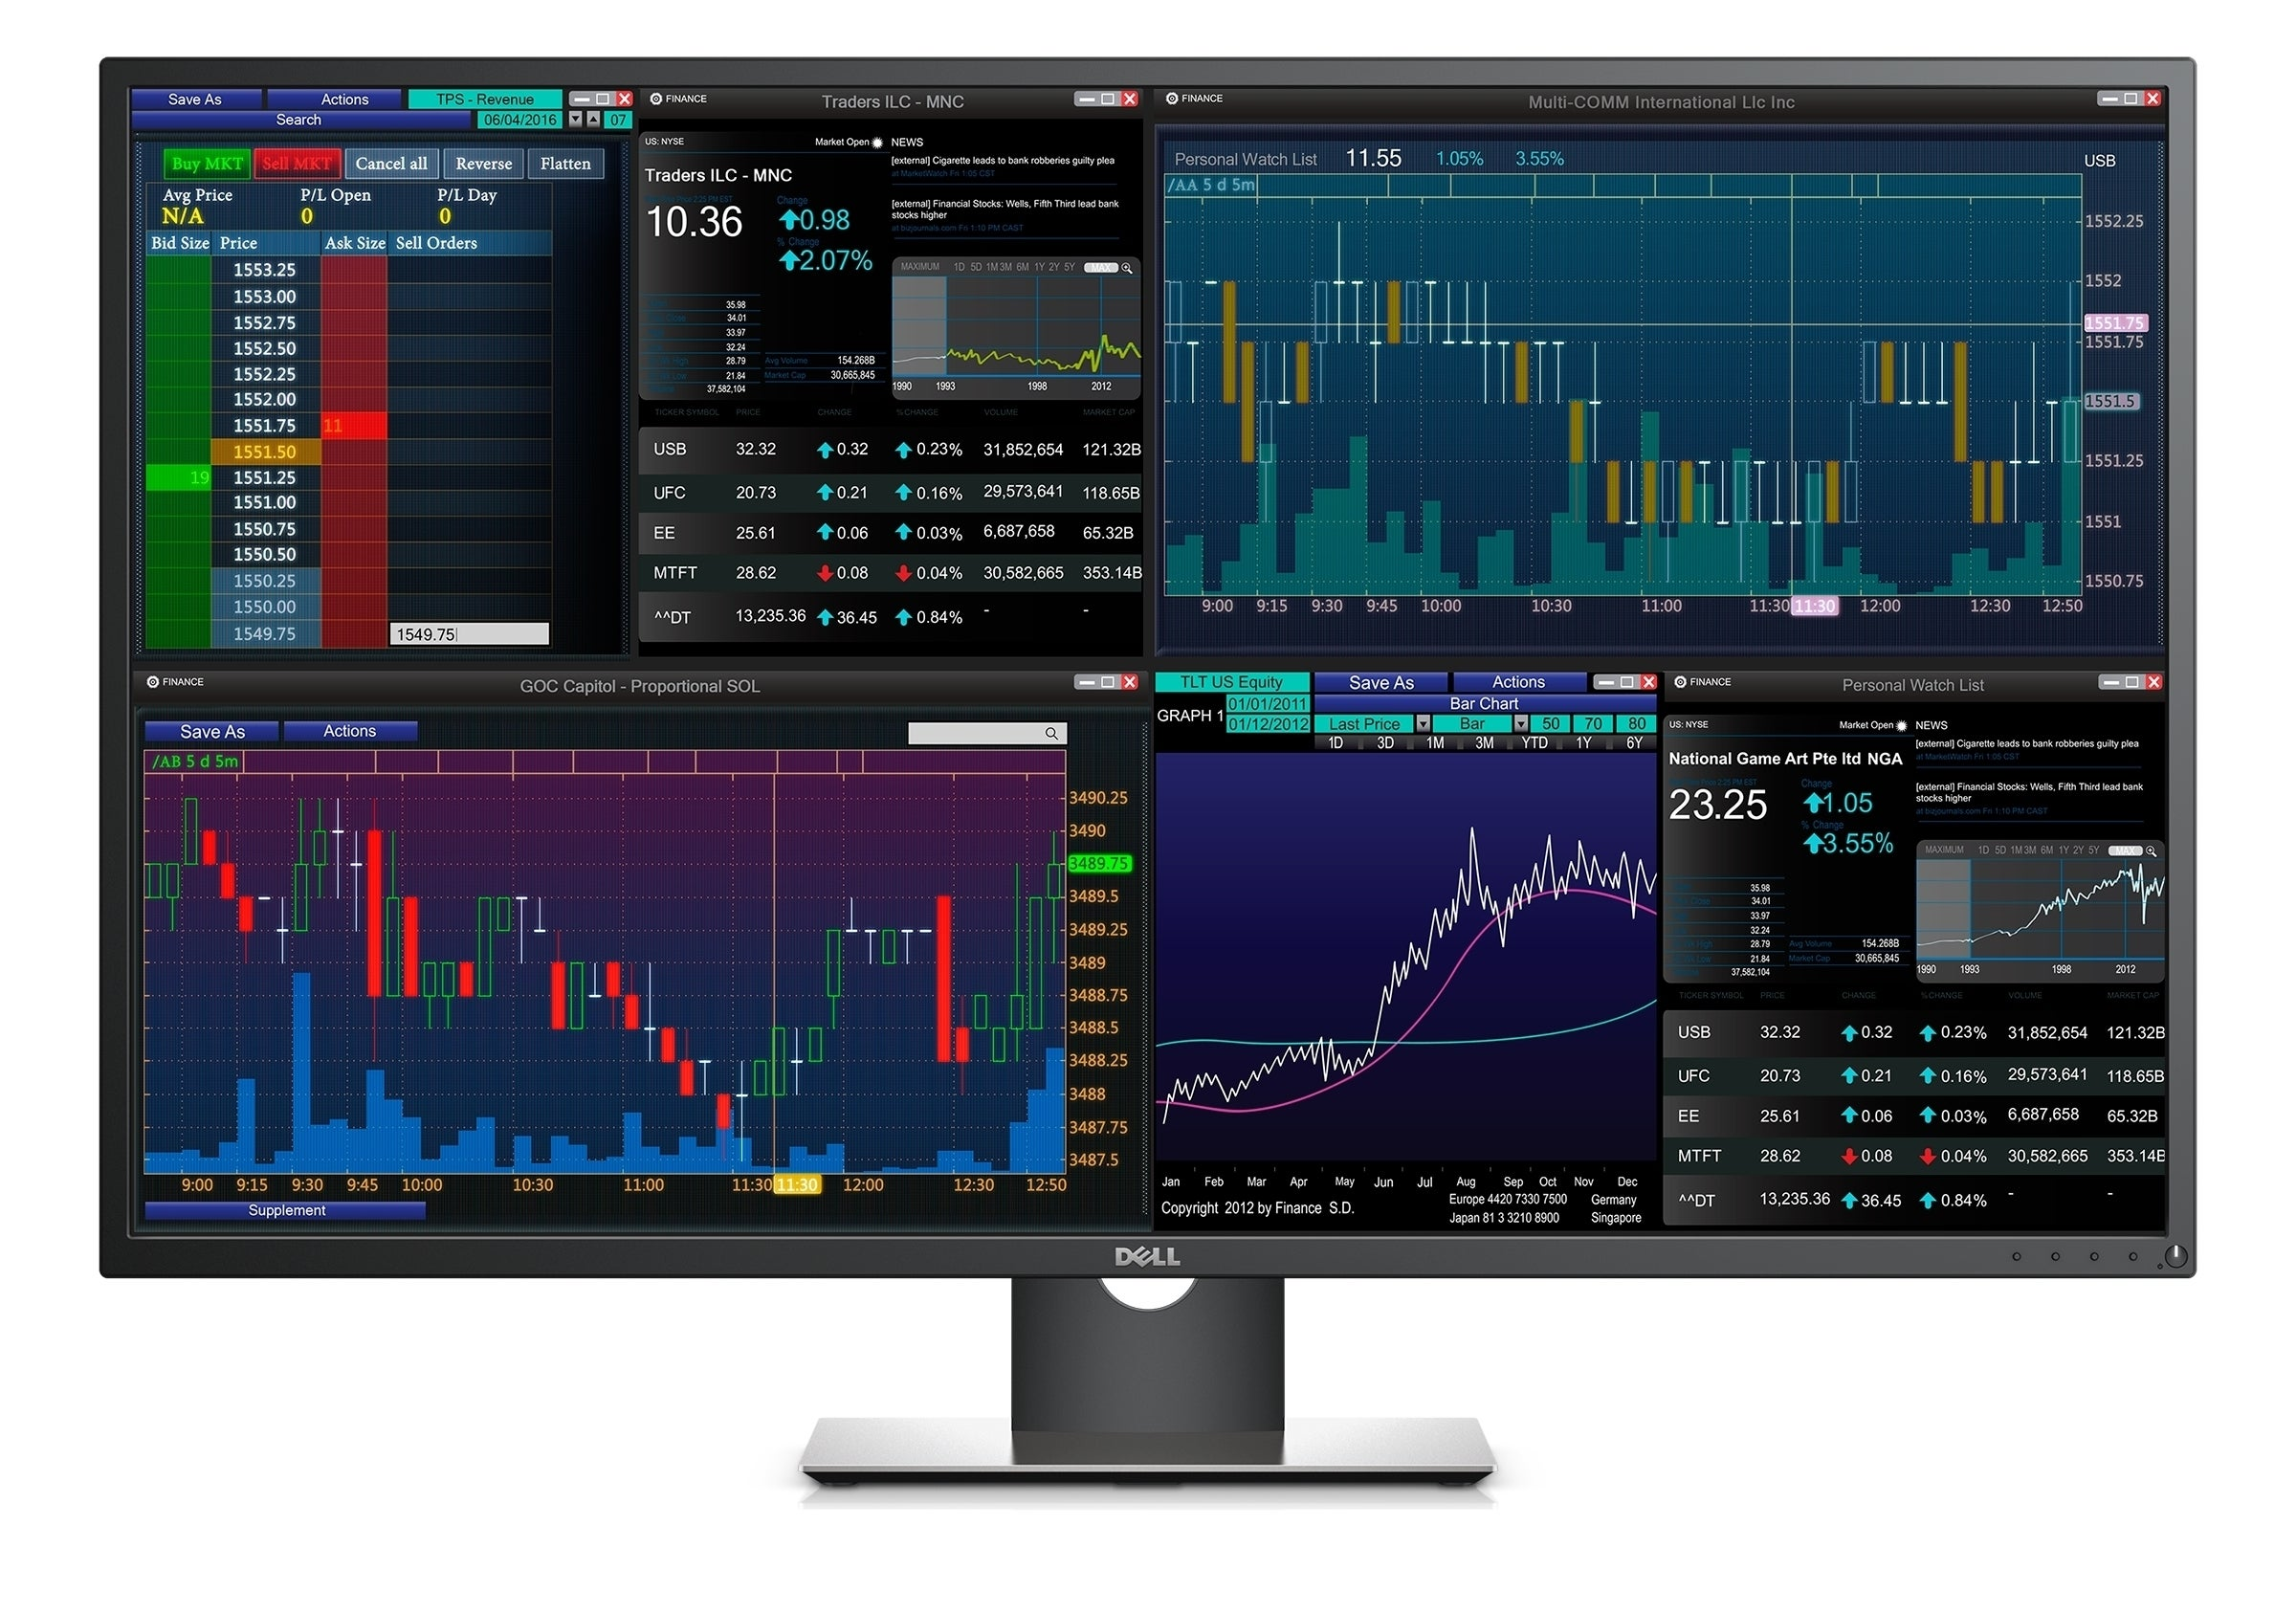 Dell's 43 Ultra HD 4K Multi-Client Monitor is a huge 4-screen display